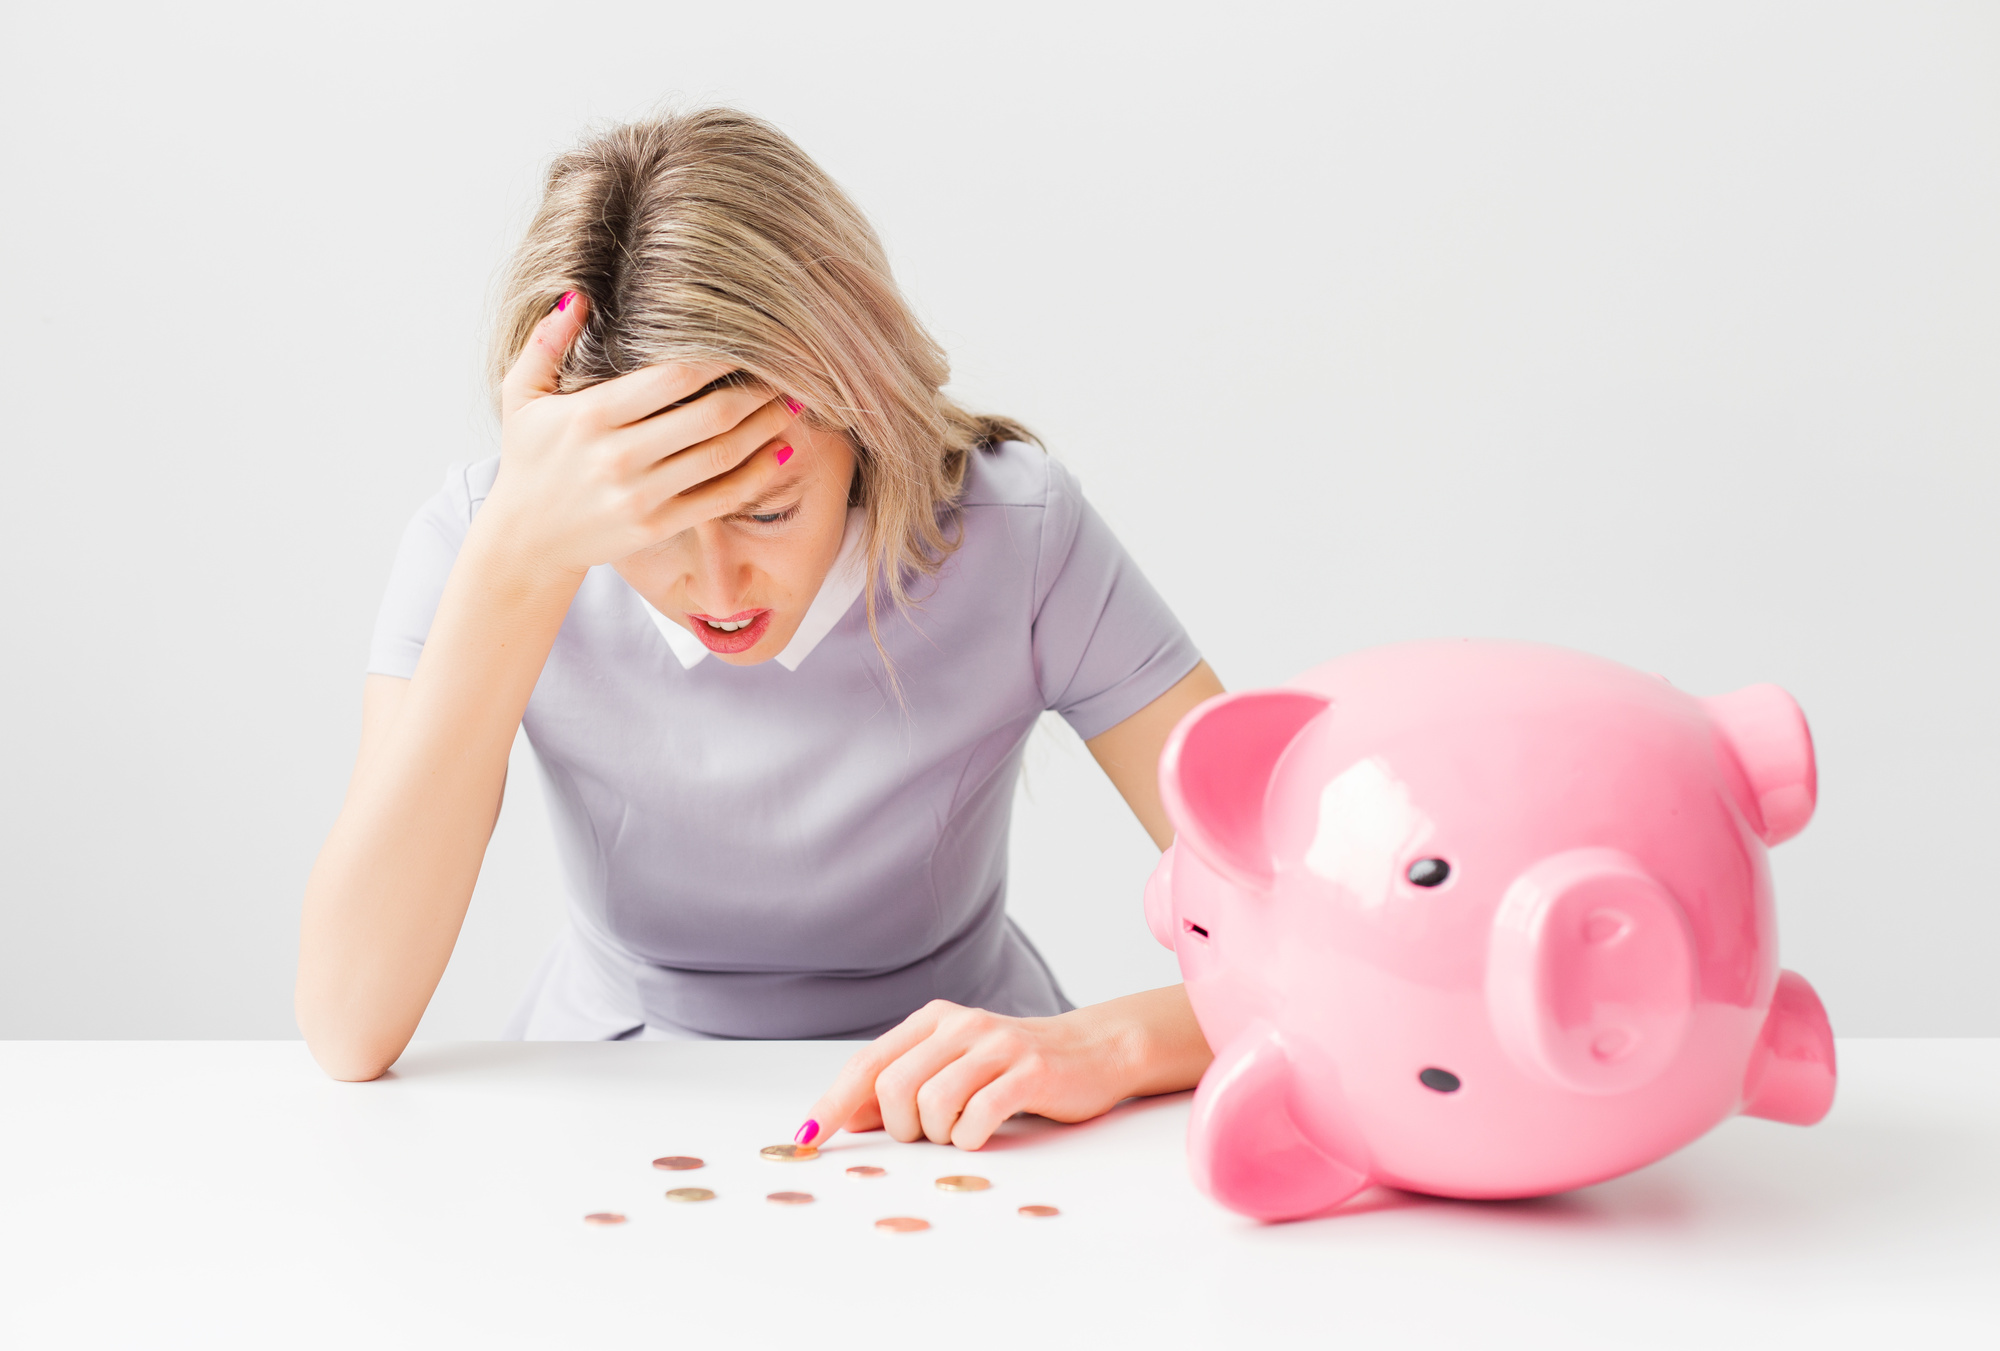 woman counting money from piggy bank